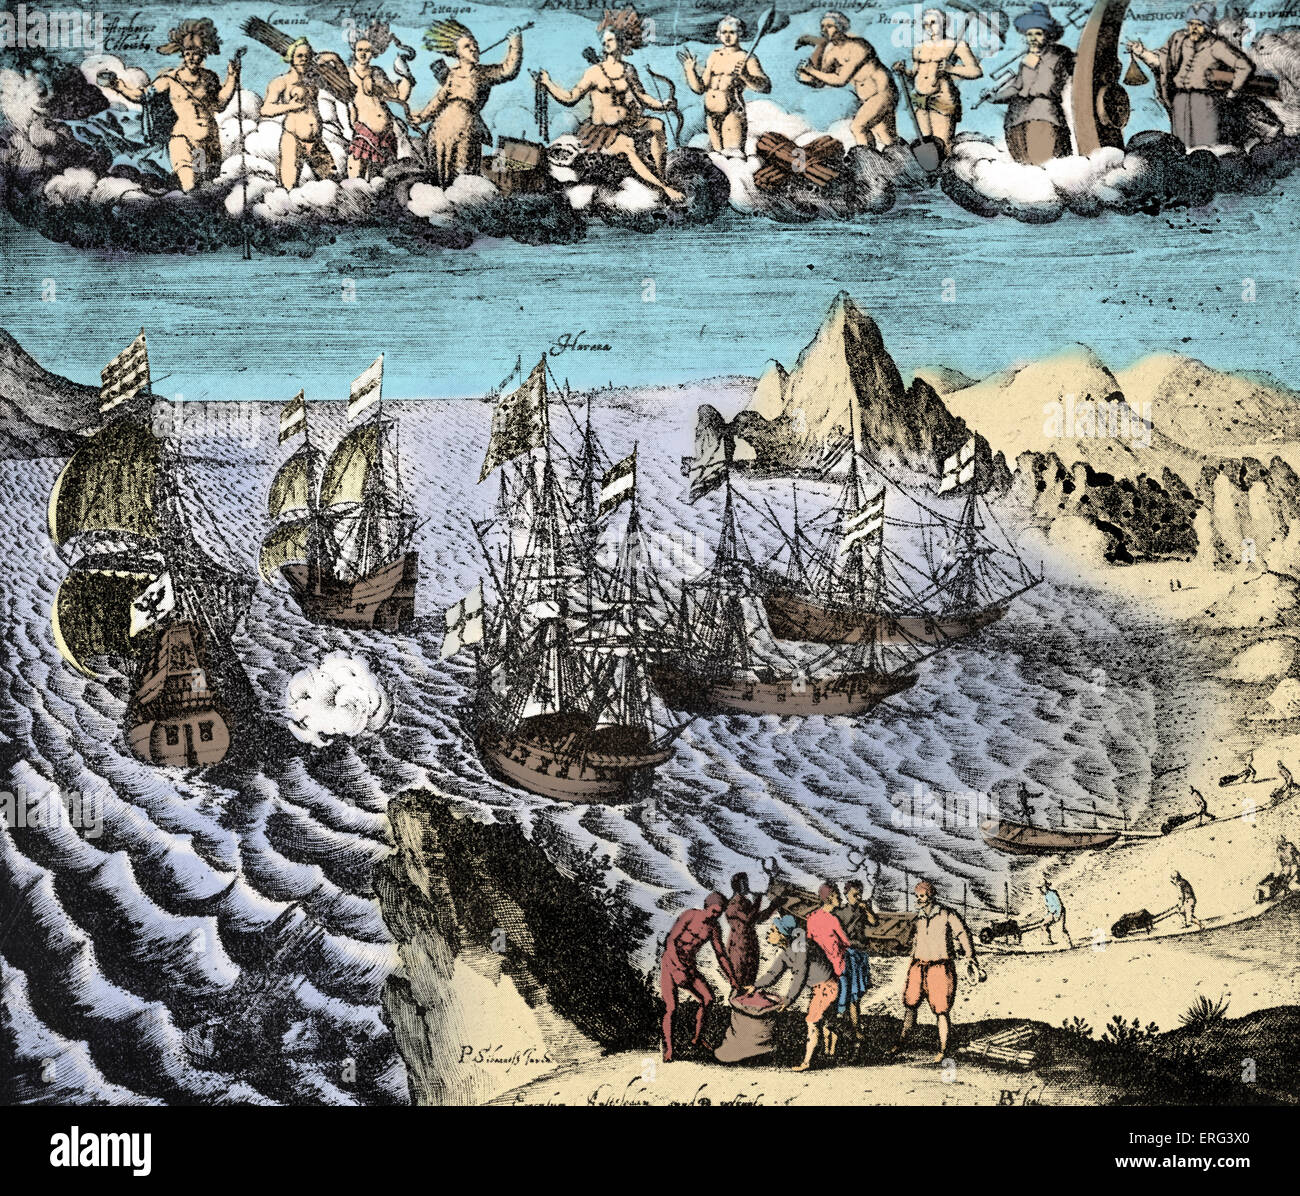 The Discovery of America and its Riches. Dutch engraving by P. Sibrant. Colourized - Stock Image